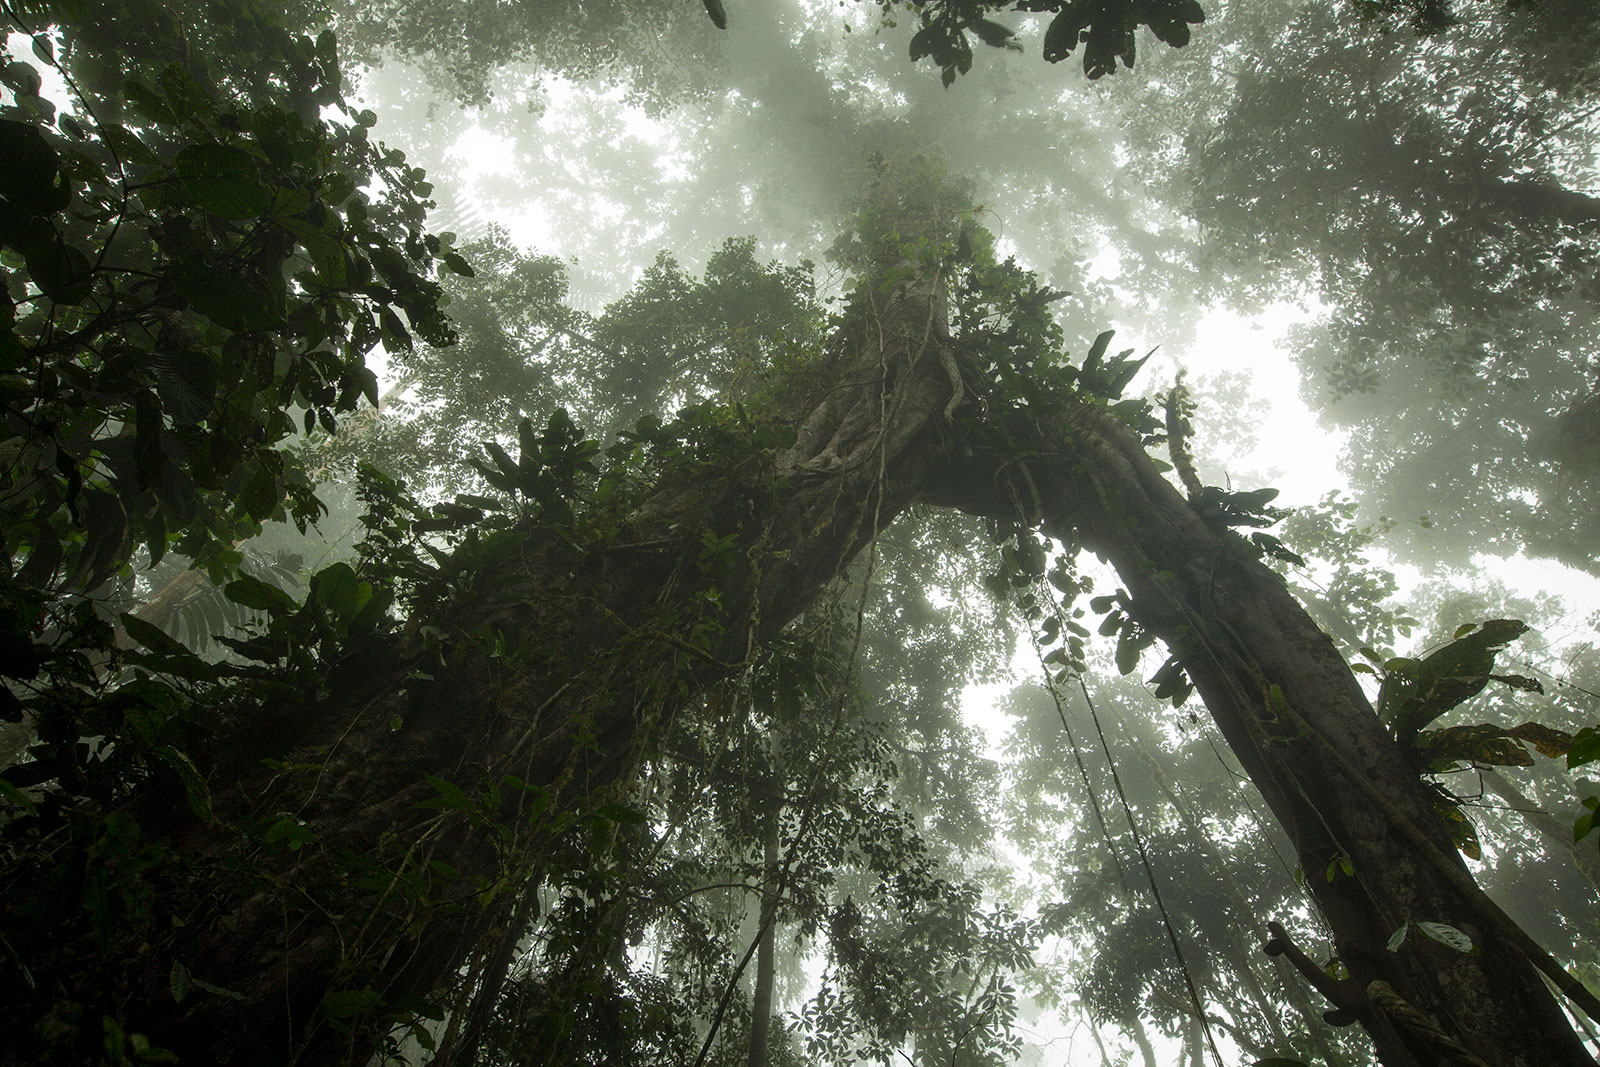 A view of the forest canopy